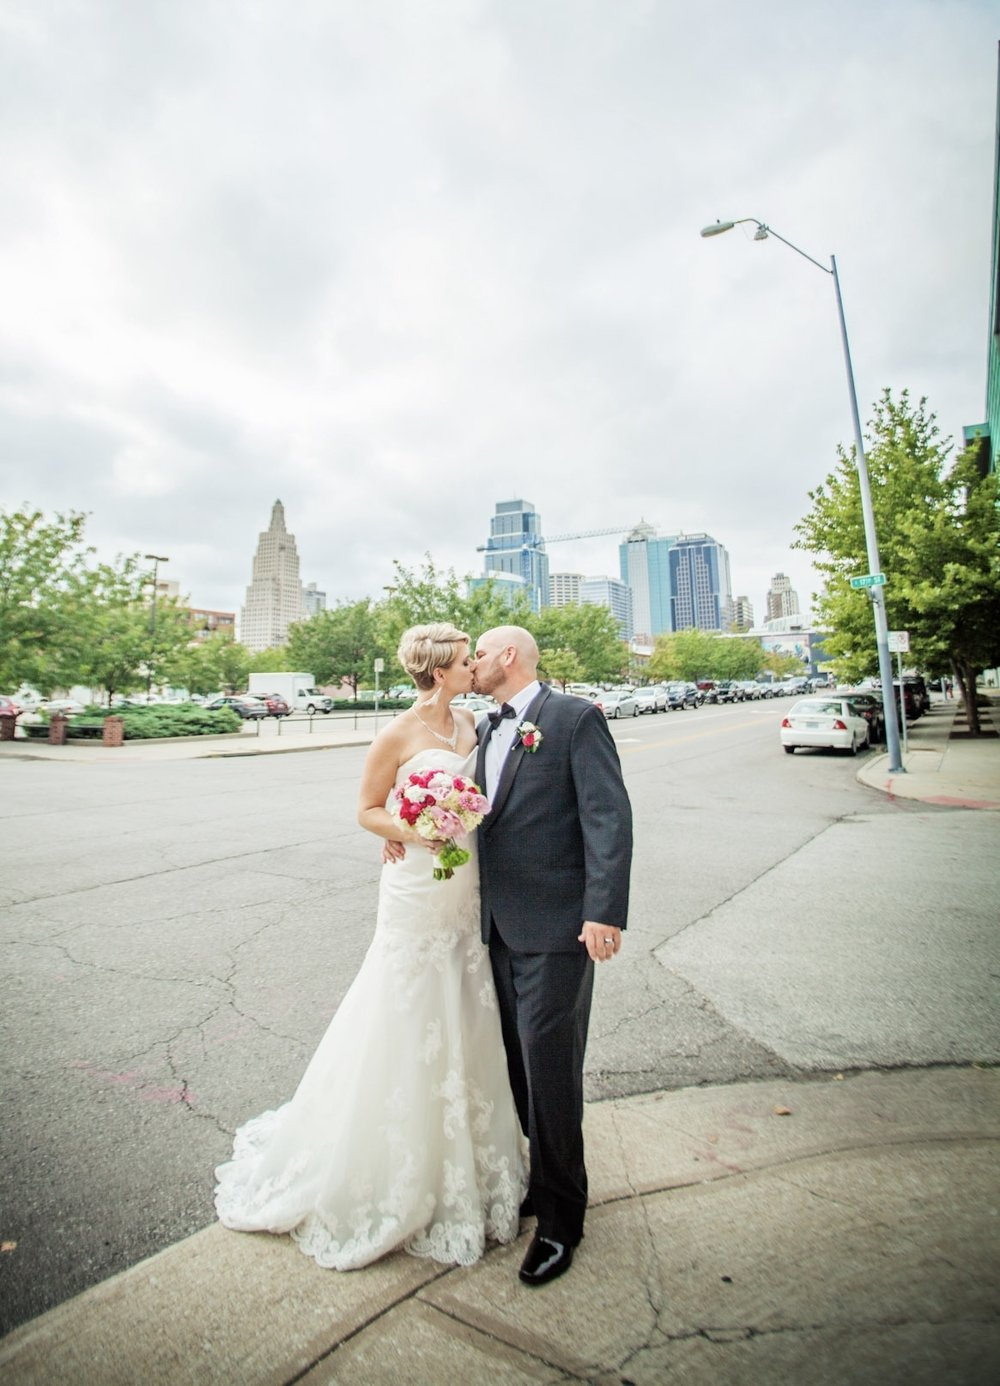 Kansas+City-Small+Wedding-Elope_Intimate_Ceremony_Melanie+David-13.jpg